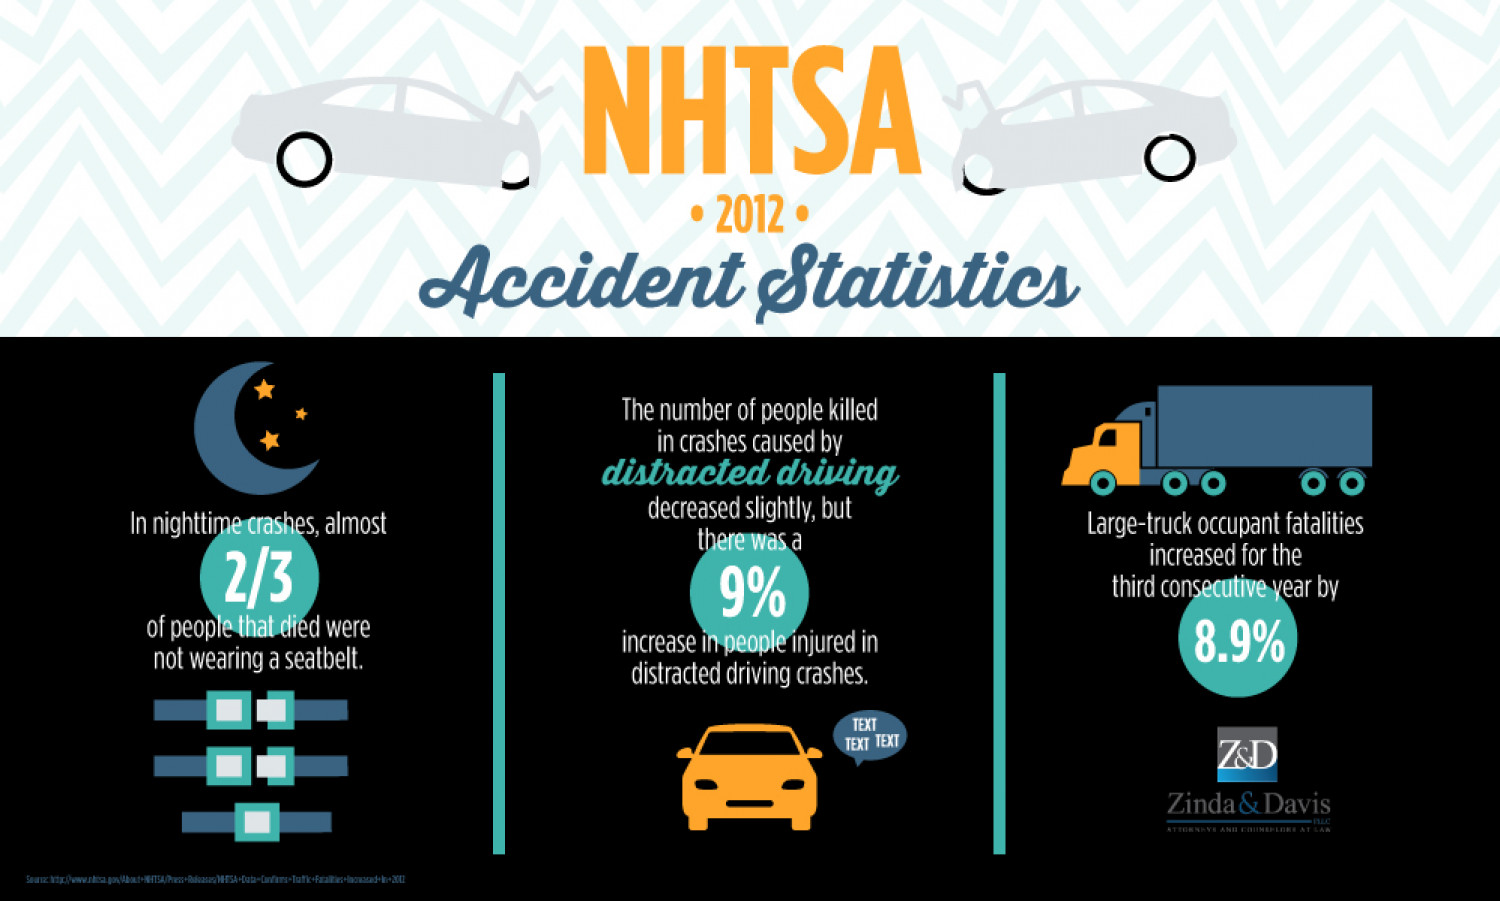 NHTSA Accident Statistics for 2012 Infographic